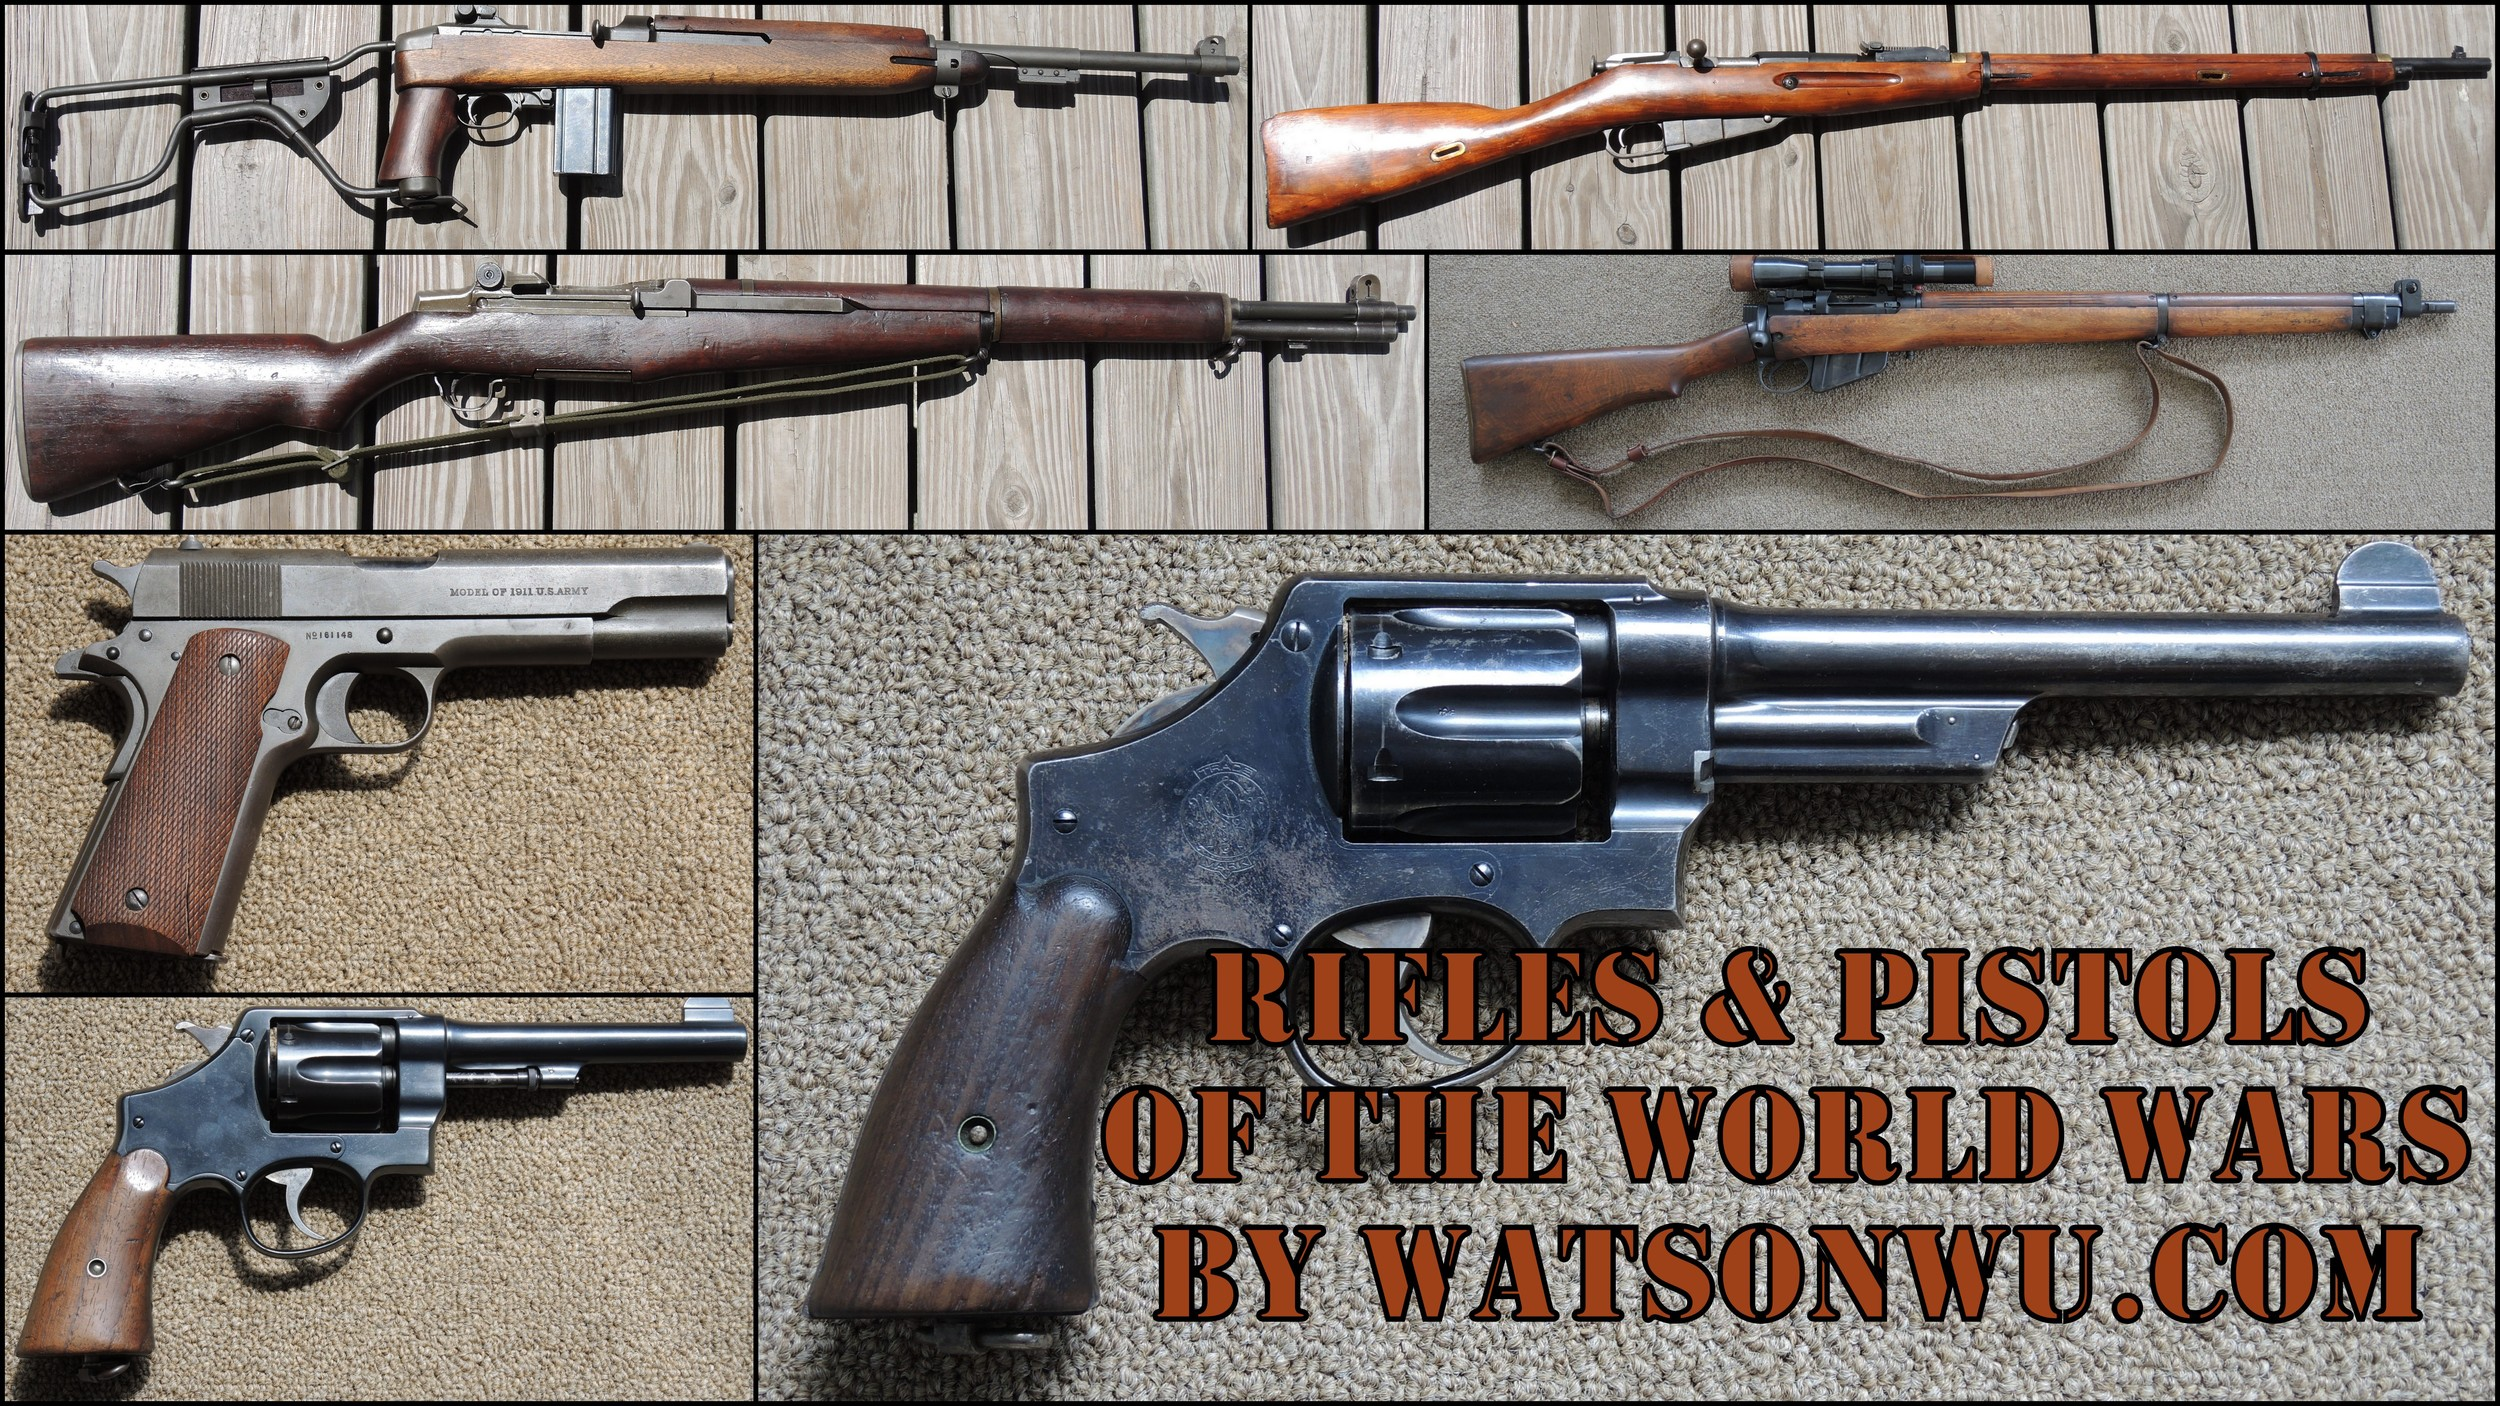 Just released is this new sound effects library. 587 wave files were created from recording 12 authentic WW1 & WW2 firearms, all at 24 bit, 96khz. Each weapon set includes sounds of foley as well as gunshots of close, medium, far, and incoming perspectives.  For more details and to purchase this library, go to   http://www.watsonwu.com/weapons/rifles-pistols-of-the-world-wars    Special thanks to Aaron Marks, Colin Hart, David Ballatyne, David Holley, Don Wilson, Frank Correa, Jason Shortuse, RJ Flowers, Skip Perry, and my loyal customers.